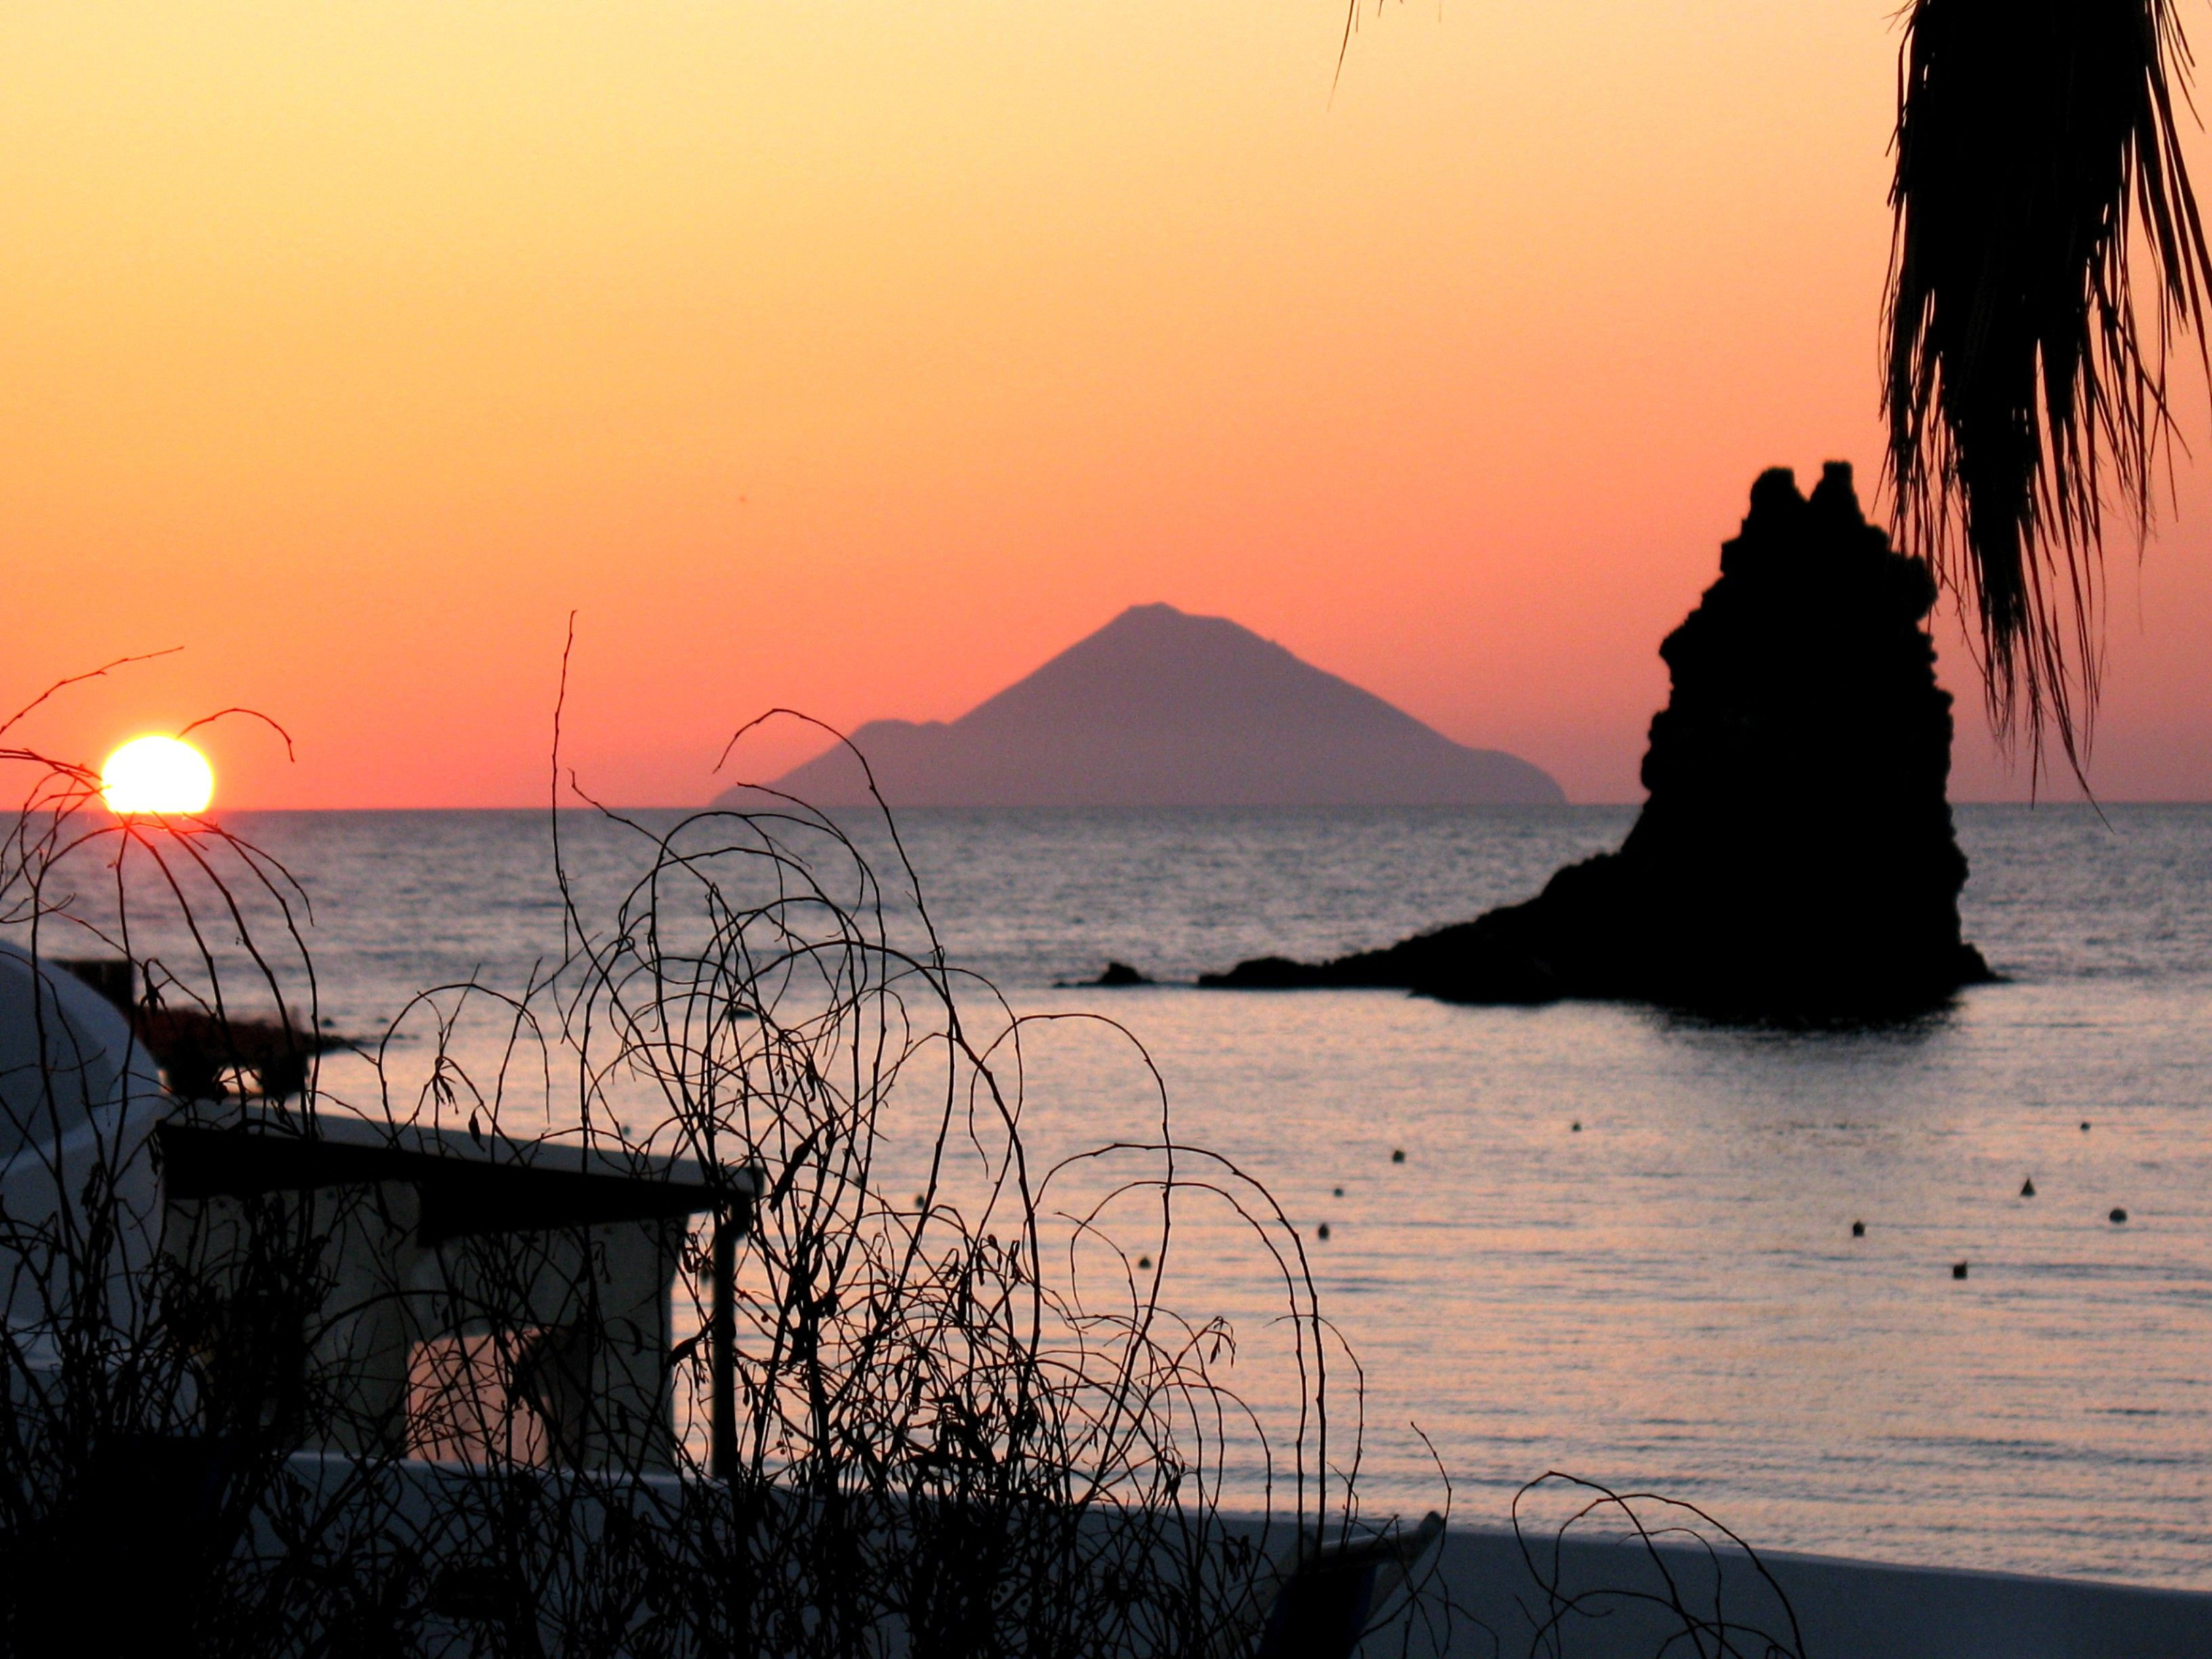 I tramonti alle Isole Eolie.